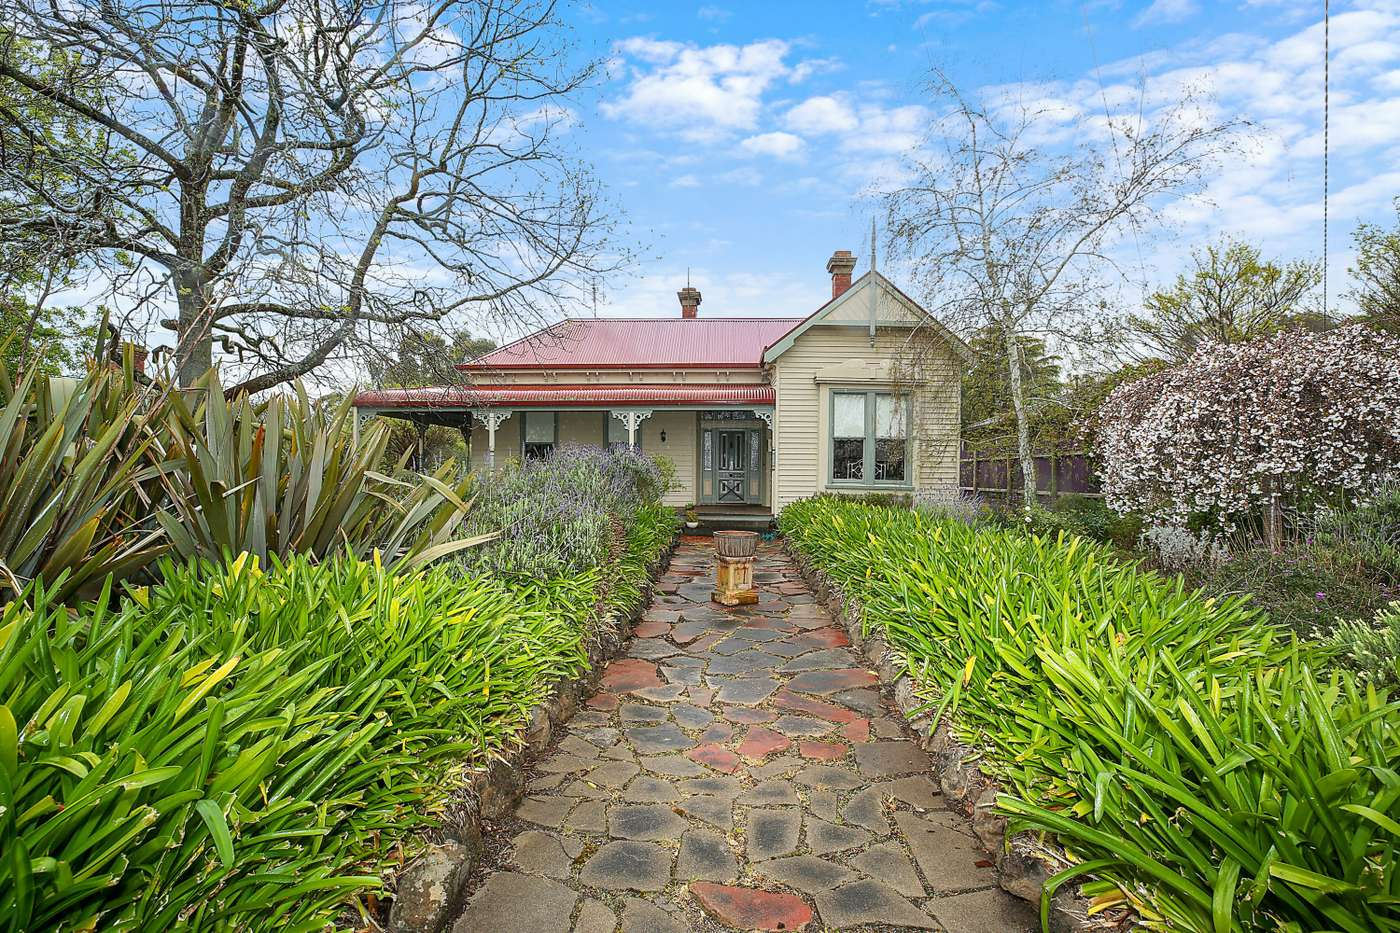 Main view of Homely house listing, 5 York Street, Camperdown, VIC 3260